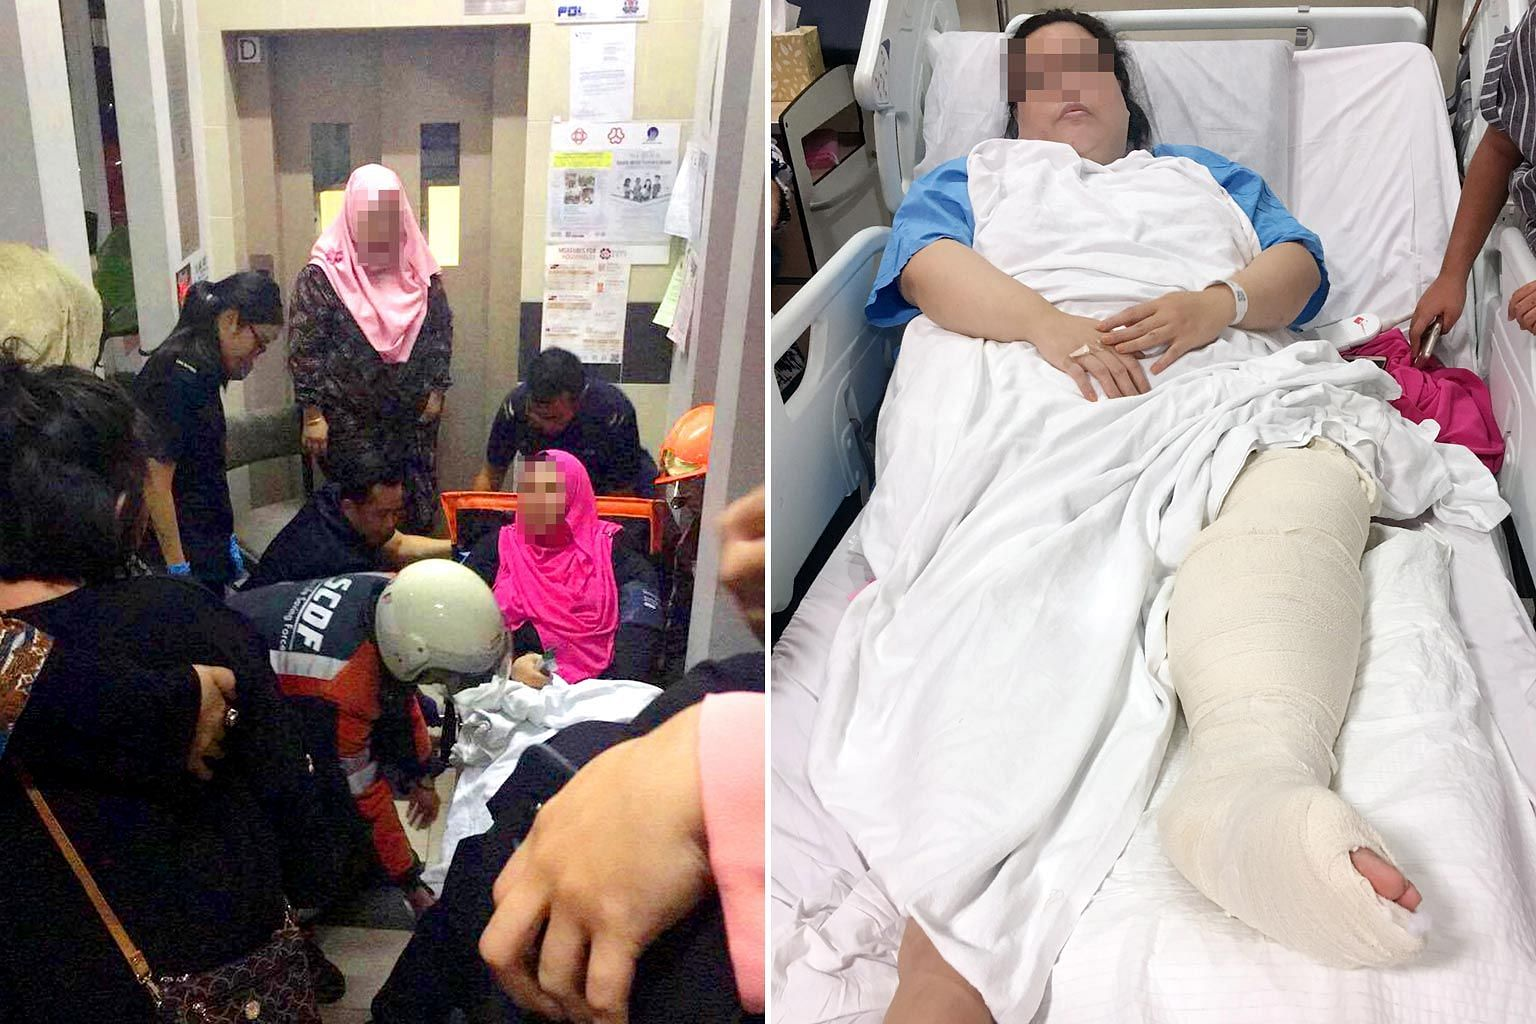 The victim was with her husband, daughter, brother and brother-in-law during a Hari Raya visit when the lift plunged, fracturing her leg. (Left) Singapore Civil Defence Force officers helping her after the accident last Saturday.